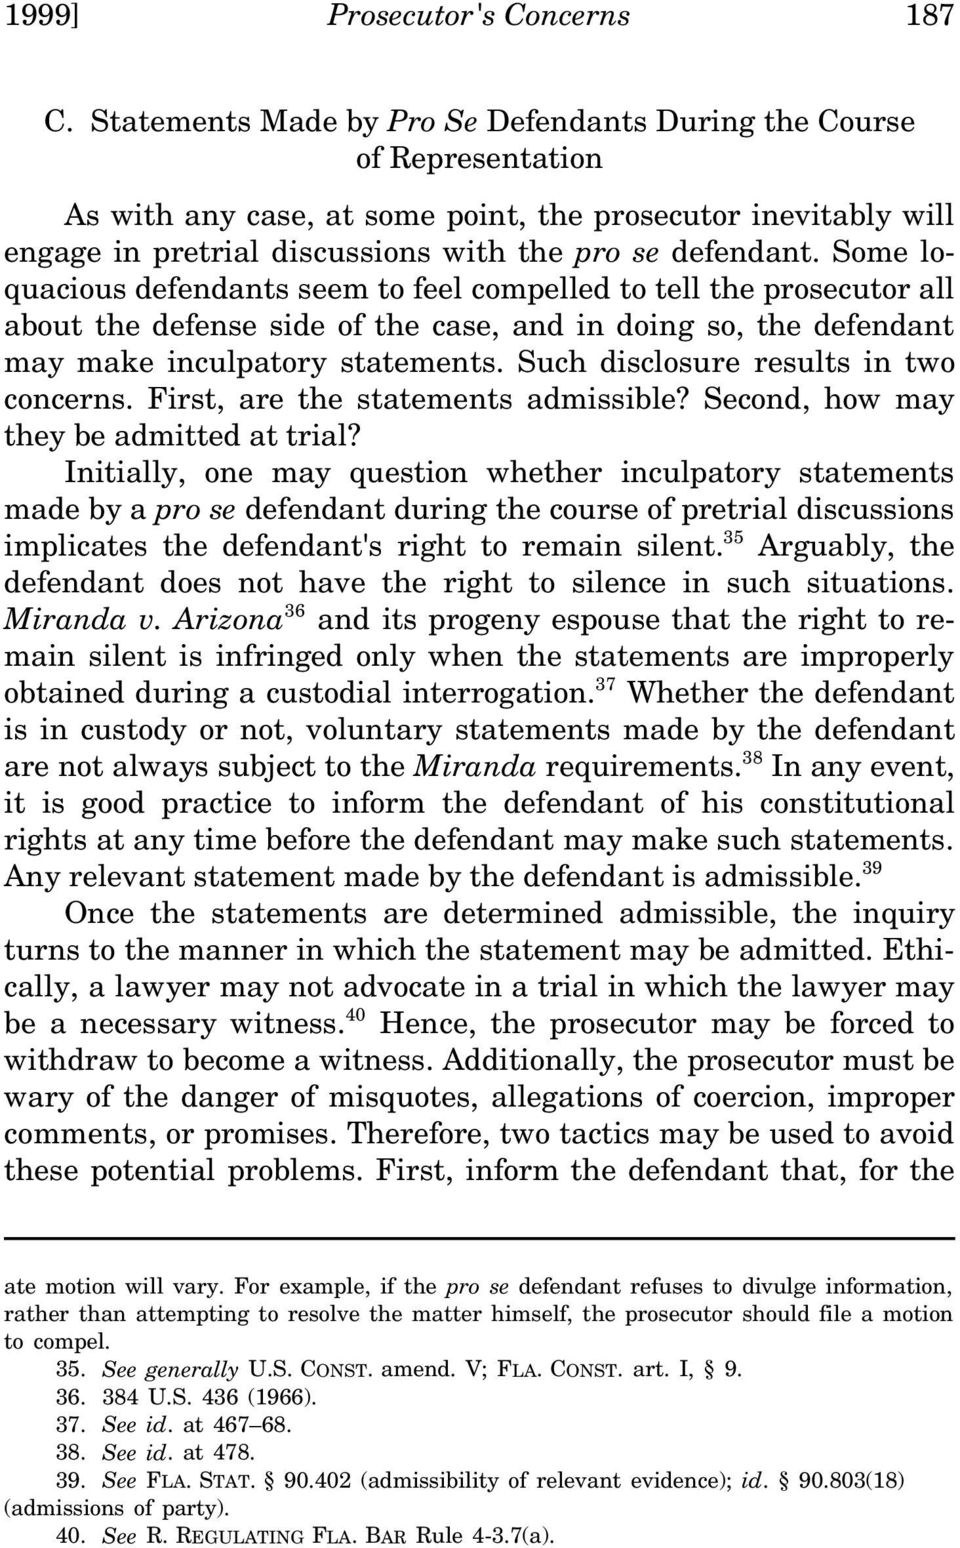 Some loquacious defendants seem to feel compelled to tell the prosecutor all about the defense side of the case, and in doing so, the defendant may make inculpatory statements.